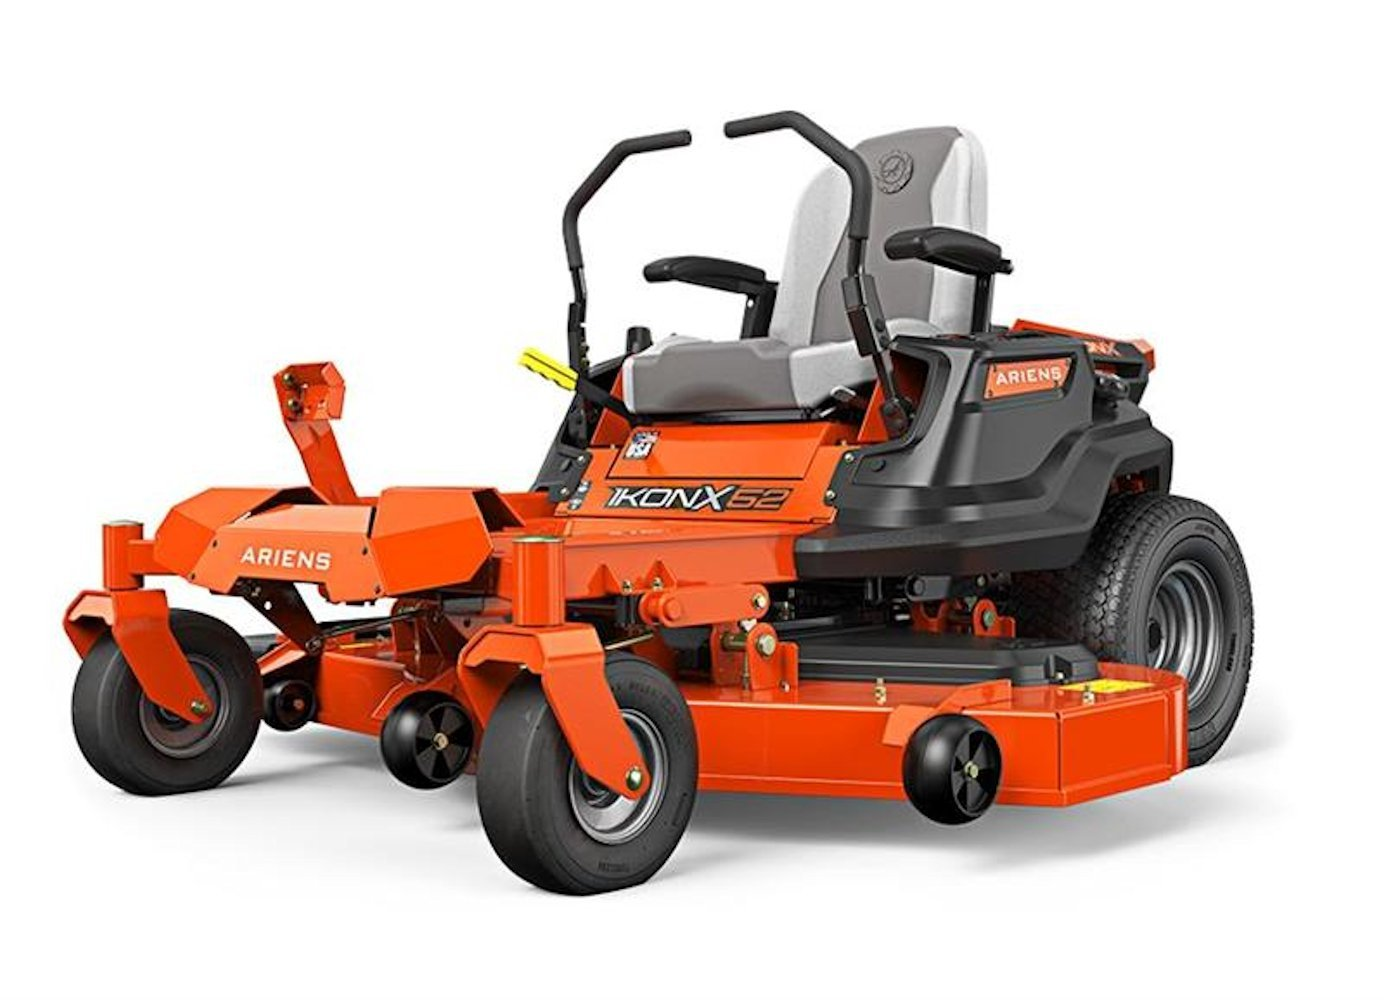 """Ariens 915223 ikon-x 52"""" zero turn mower 23hp kawasaki fr691 series 1 this refurbished product is tested and certified to look and work like new. The refurbishing process includes functionality testing, basic cleaning, inspection, and repackaging. The product ships with all relevant accessories, and may arrive in a generic box"""